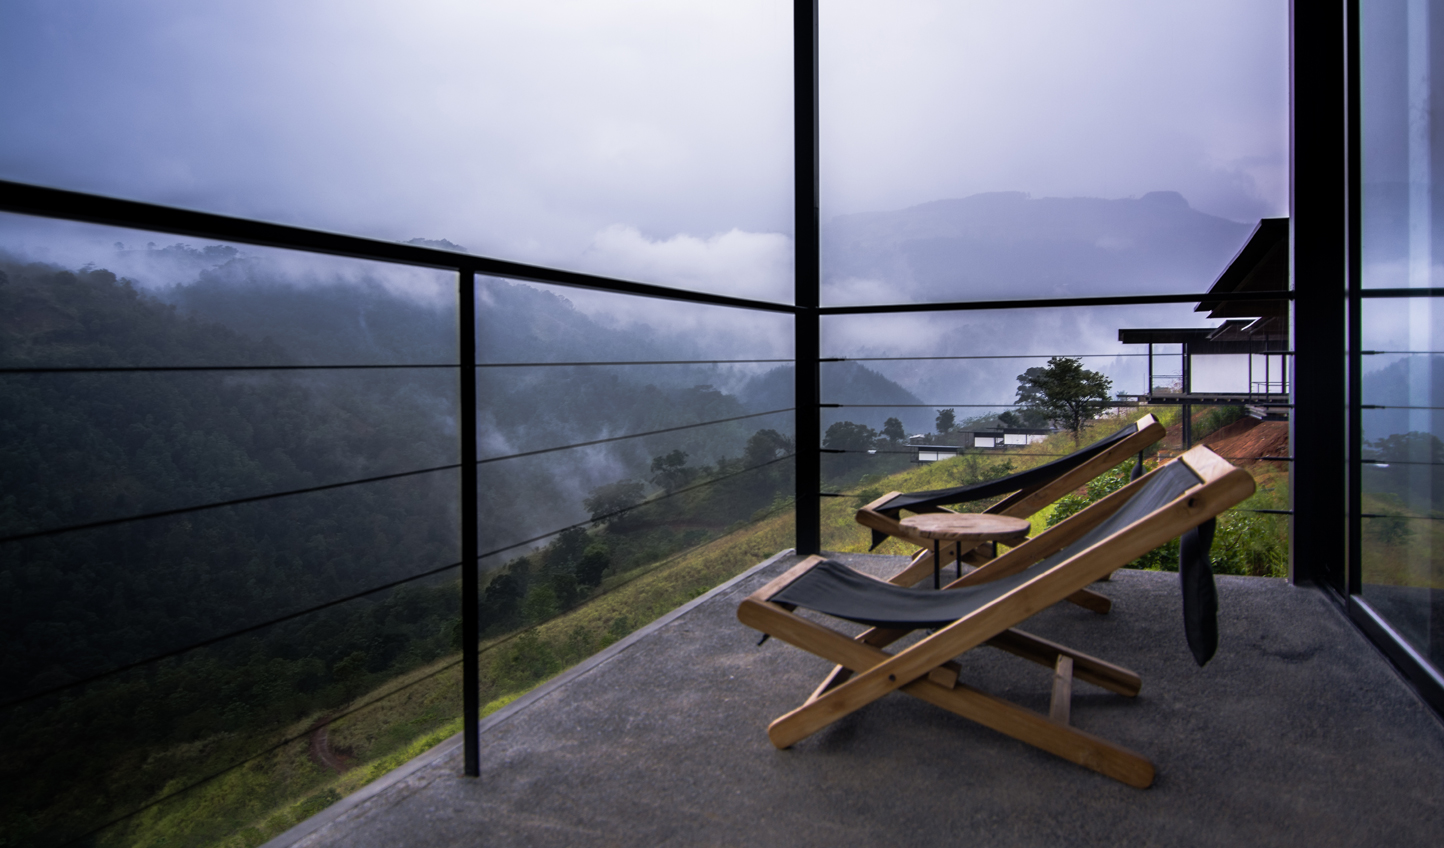 Soak in your surroundings on your private balcony